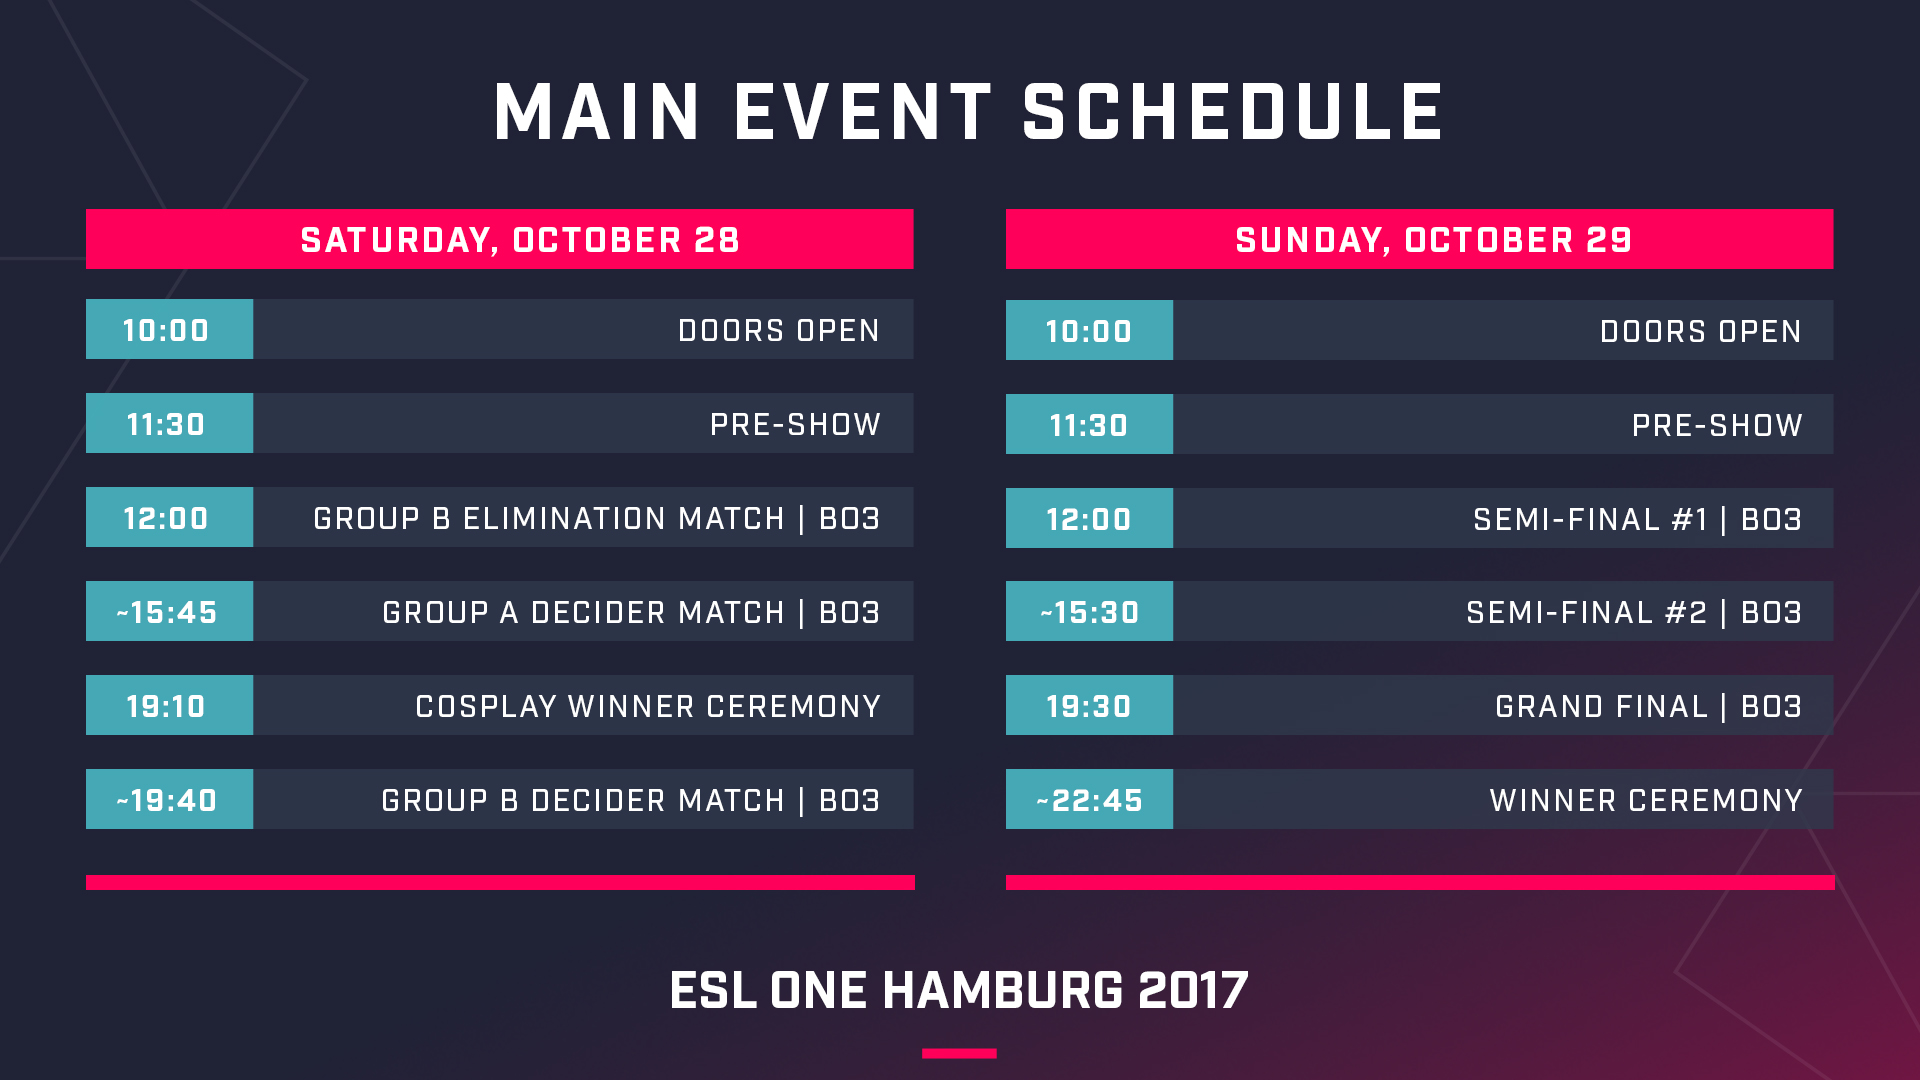 Main Event schedule - Image: ESL